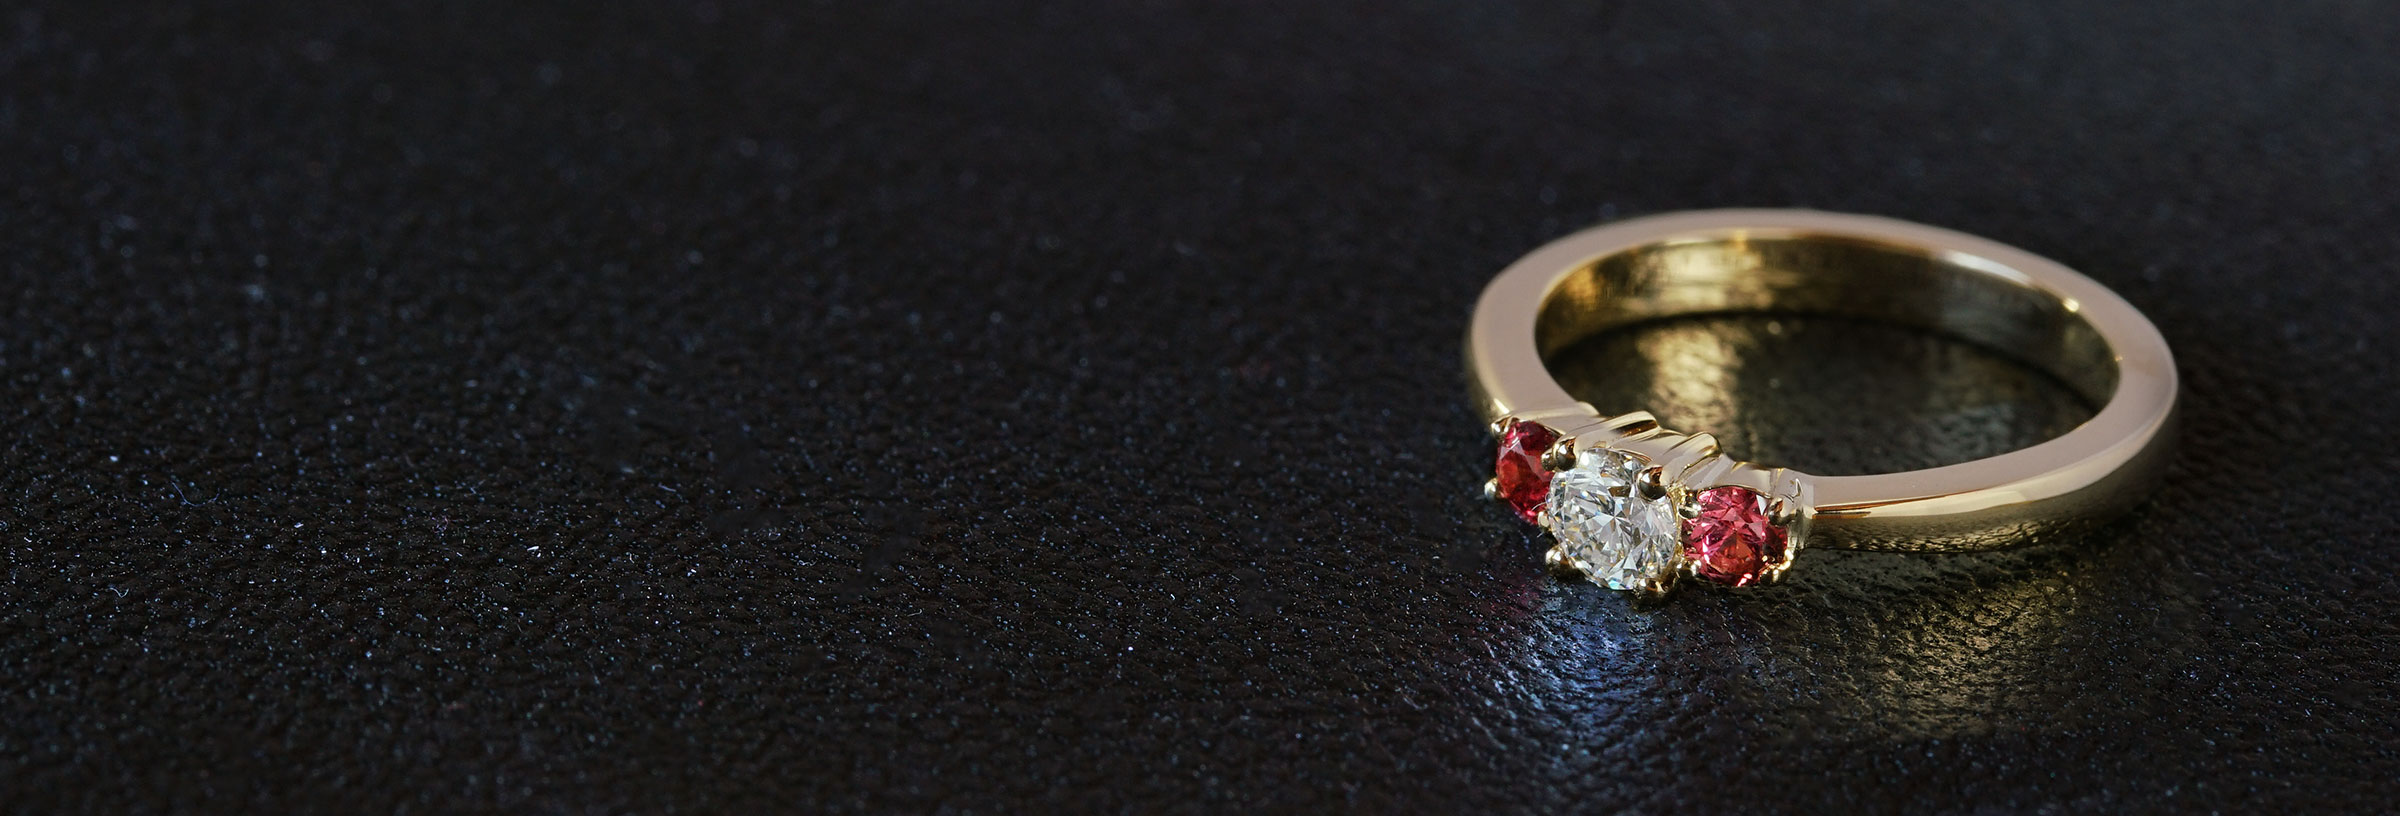 yellow-gold-peach-sapphire-and-diamond-trilogy-engagement-ring